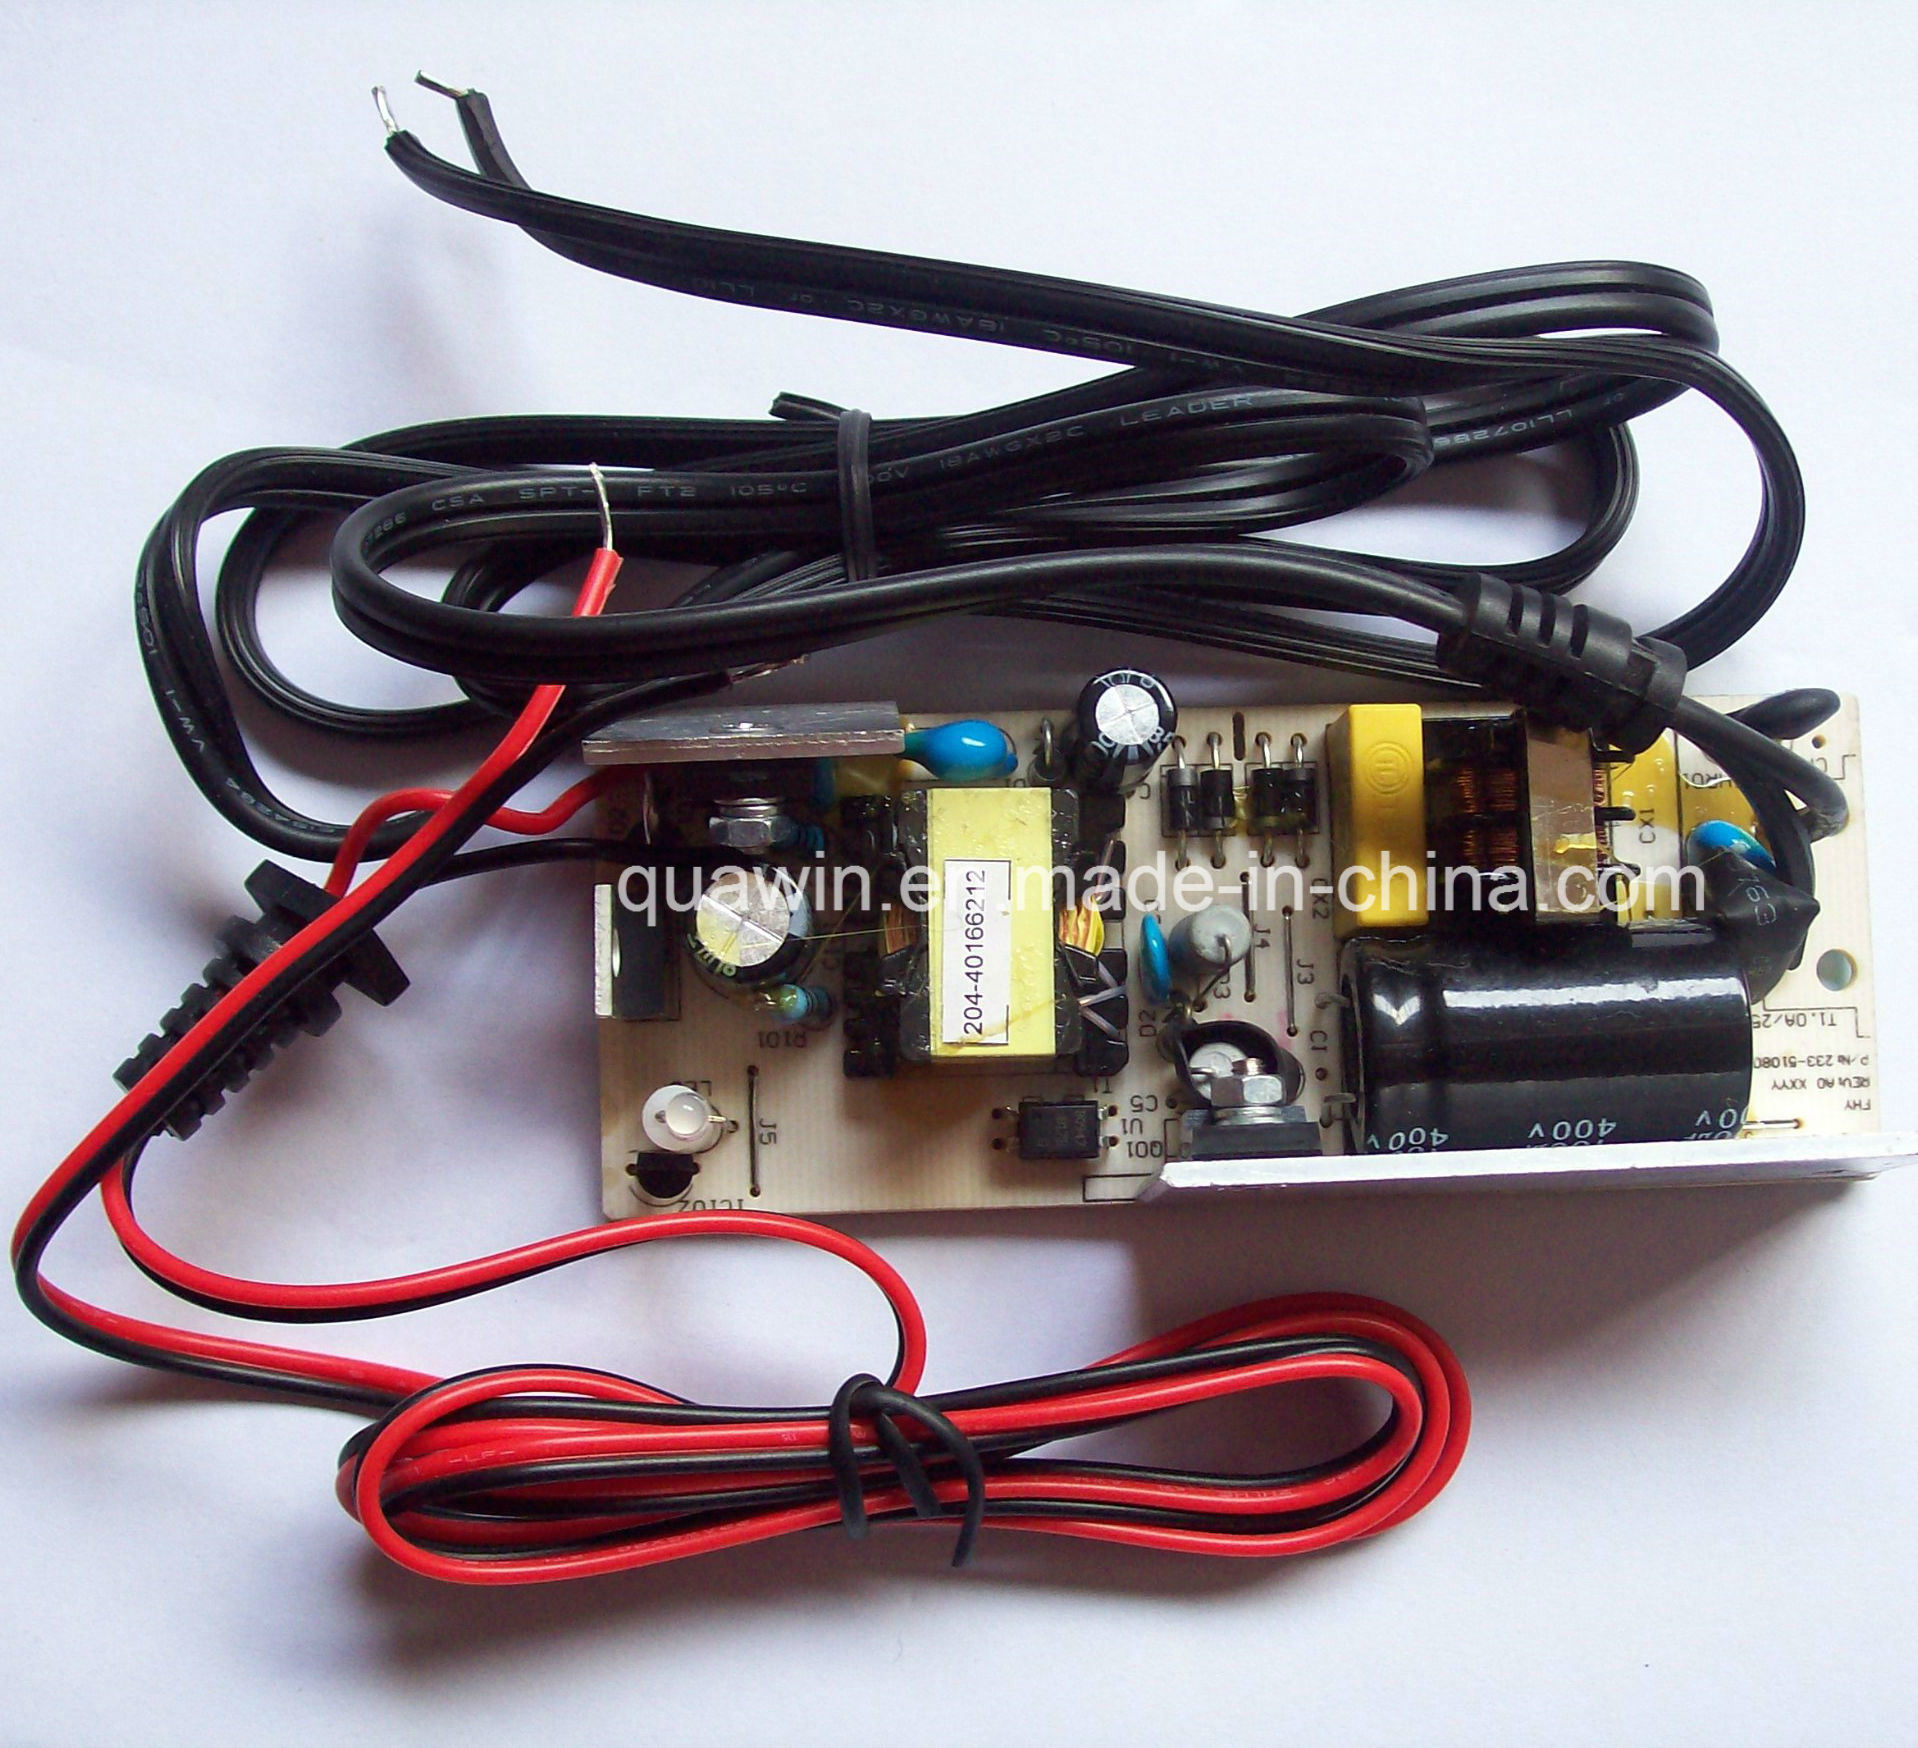 China 21v 14a Lithium Ion Battery Charger Circuit Board Lithiumbatterychargercircuitjpg